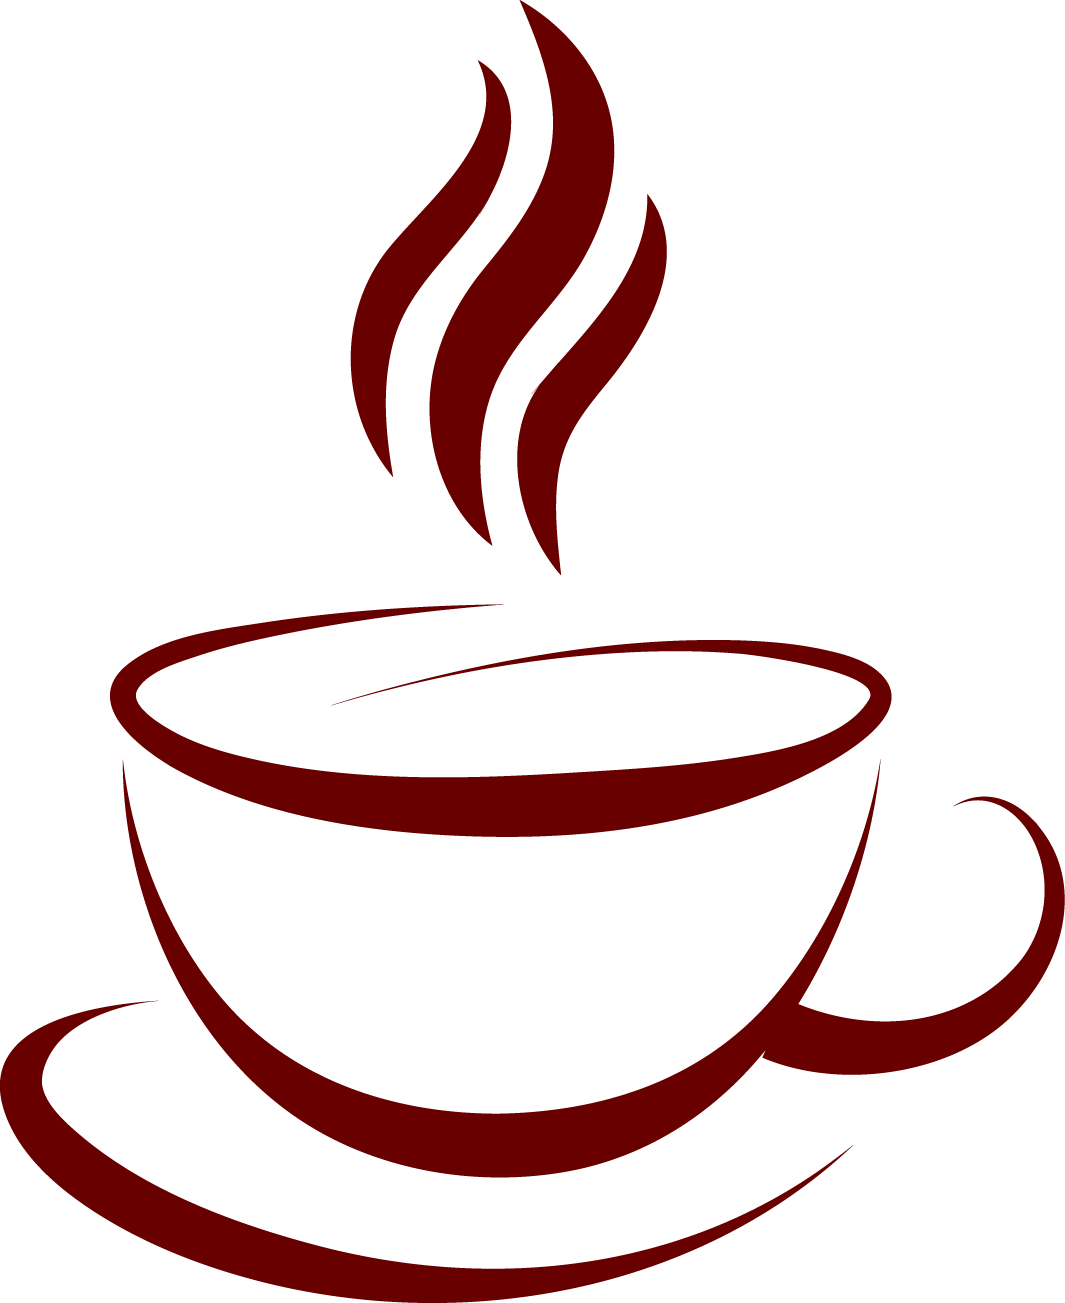 kisspng-coffee-cup-cafe-coffee-label-vector-material-5aa1d70bd6c808.4694530715205557878798.png